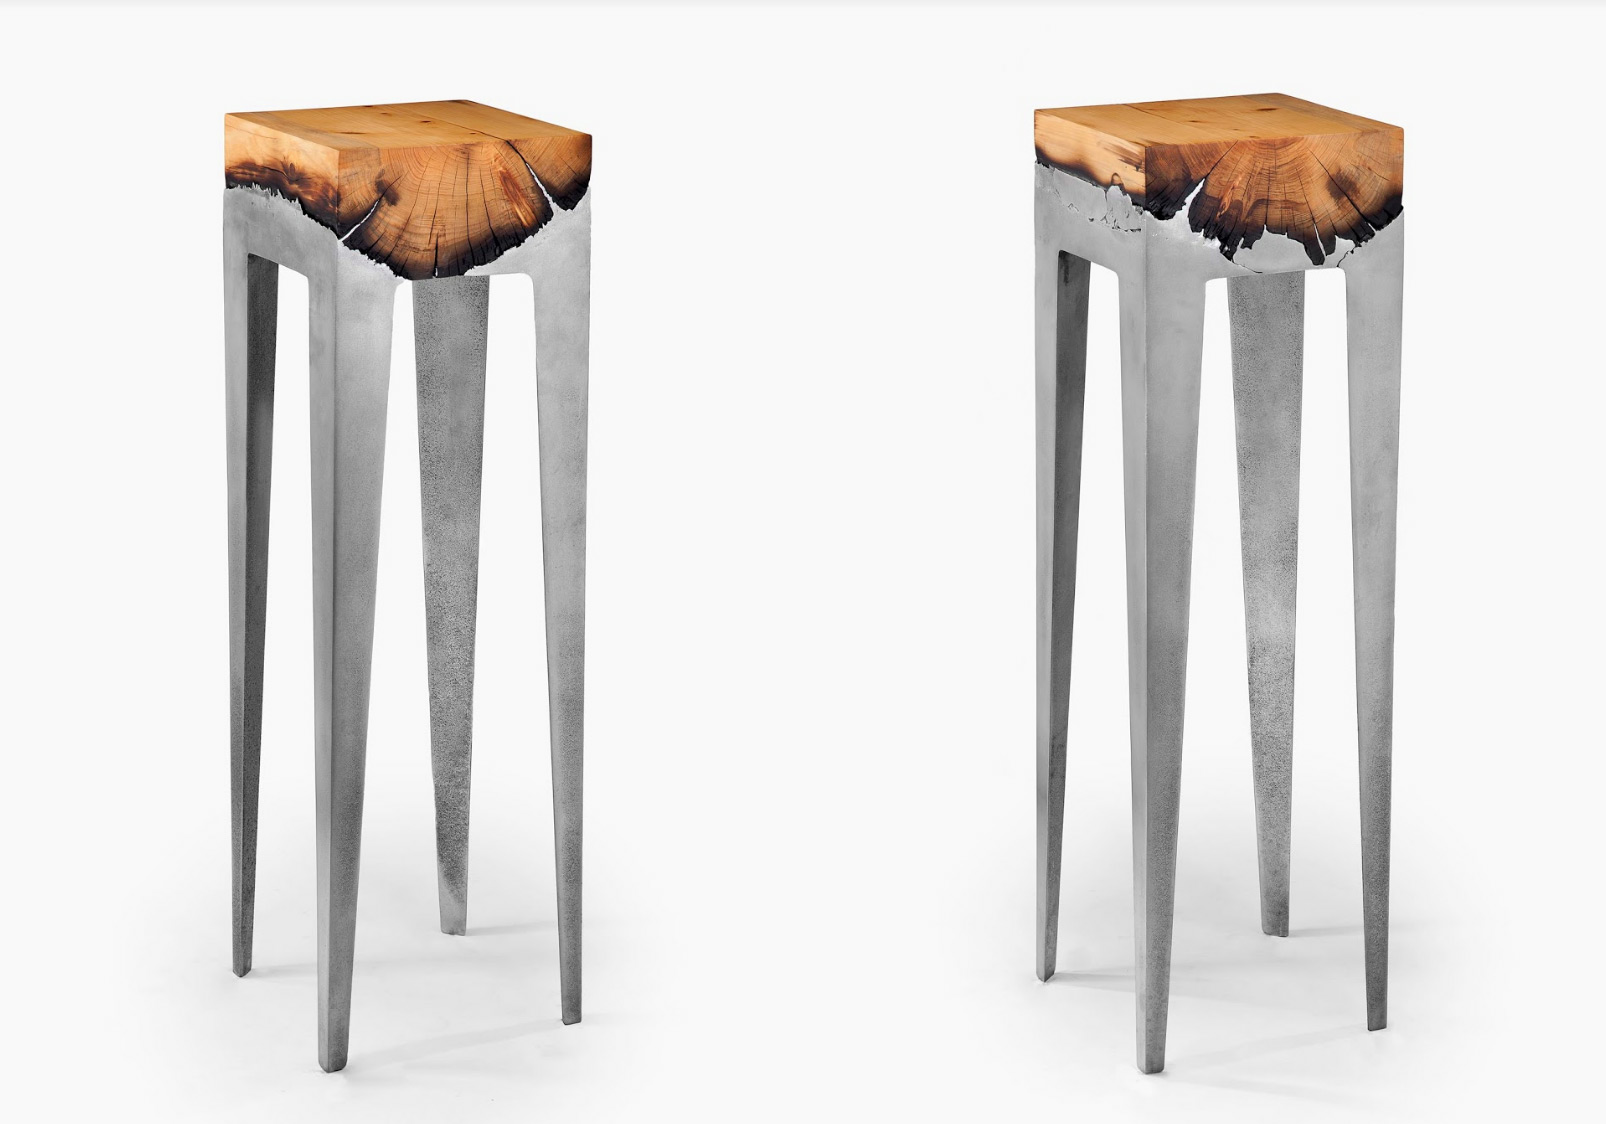 Sleek Furniture Collection by Hilla Shamia Harmonizes Cast Aluminum and Natural Wood